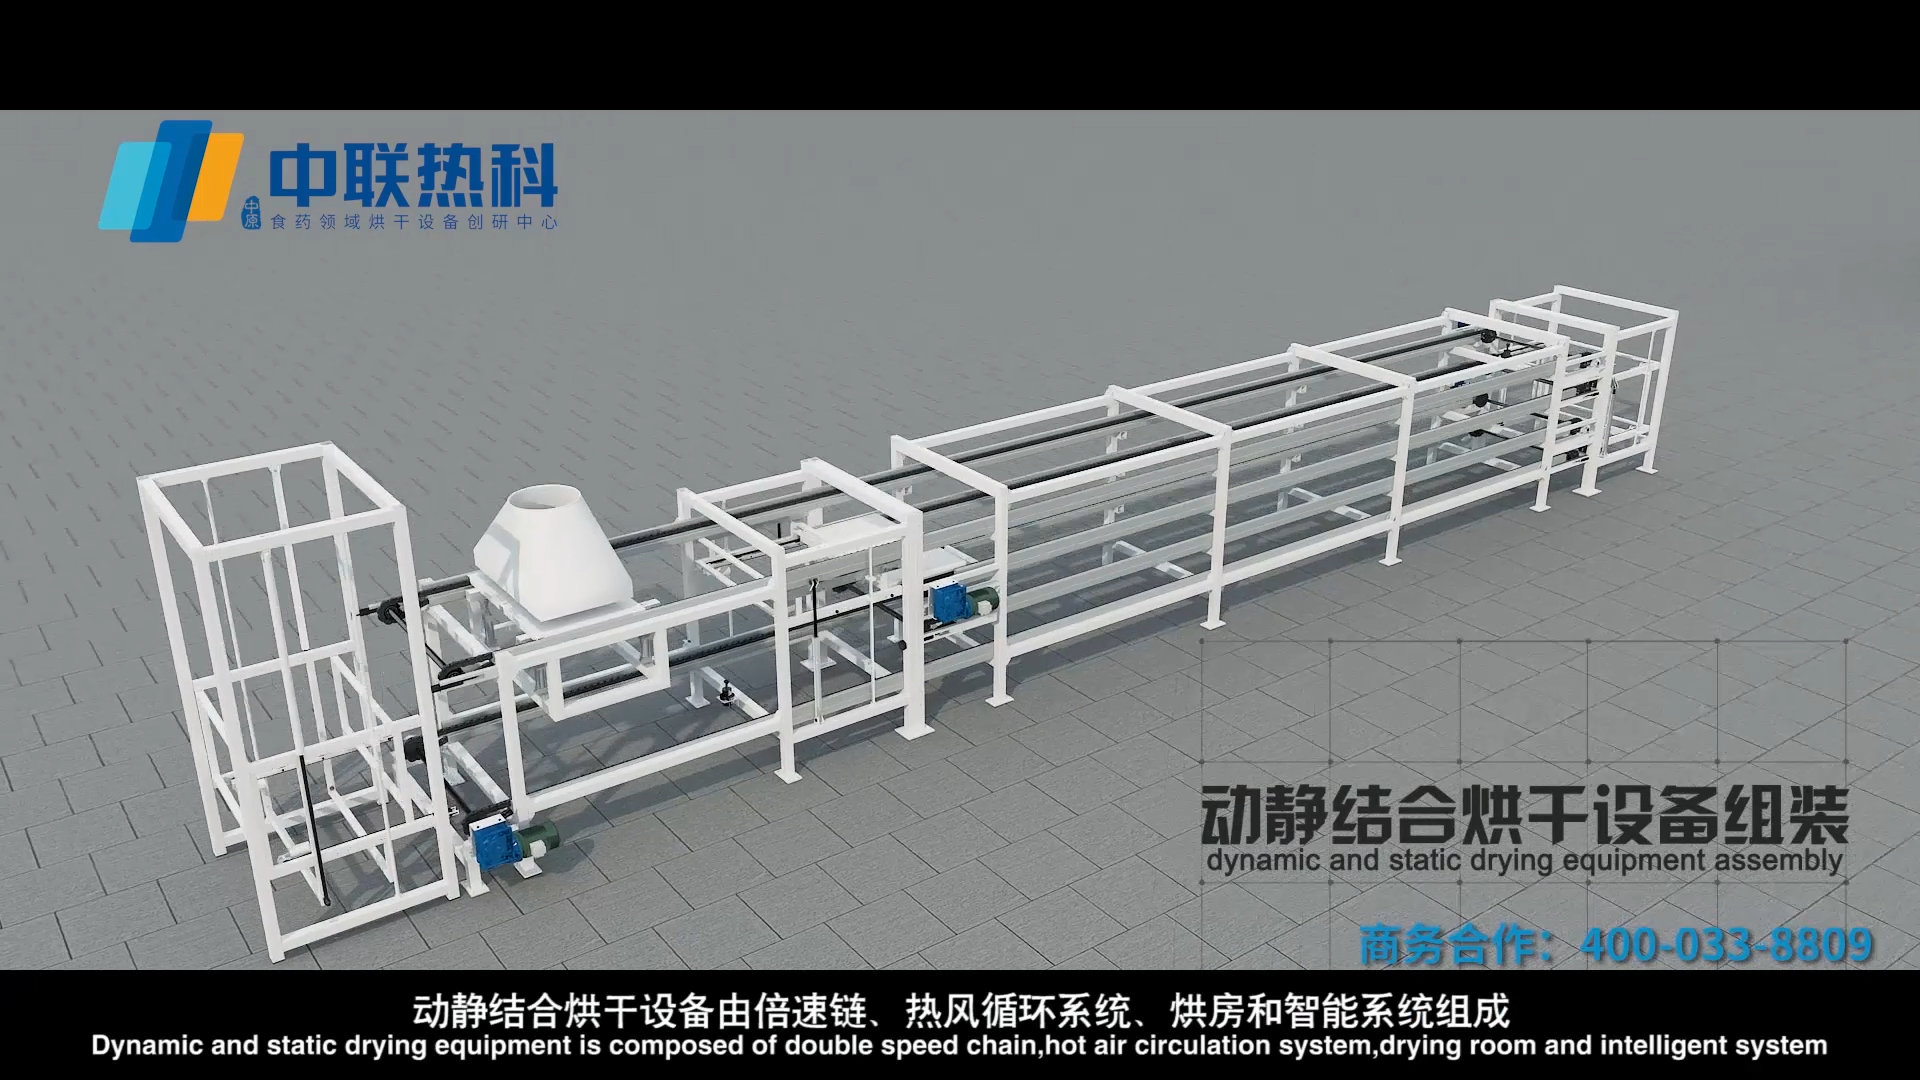 Static and dynamic drying equipment